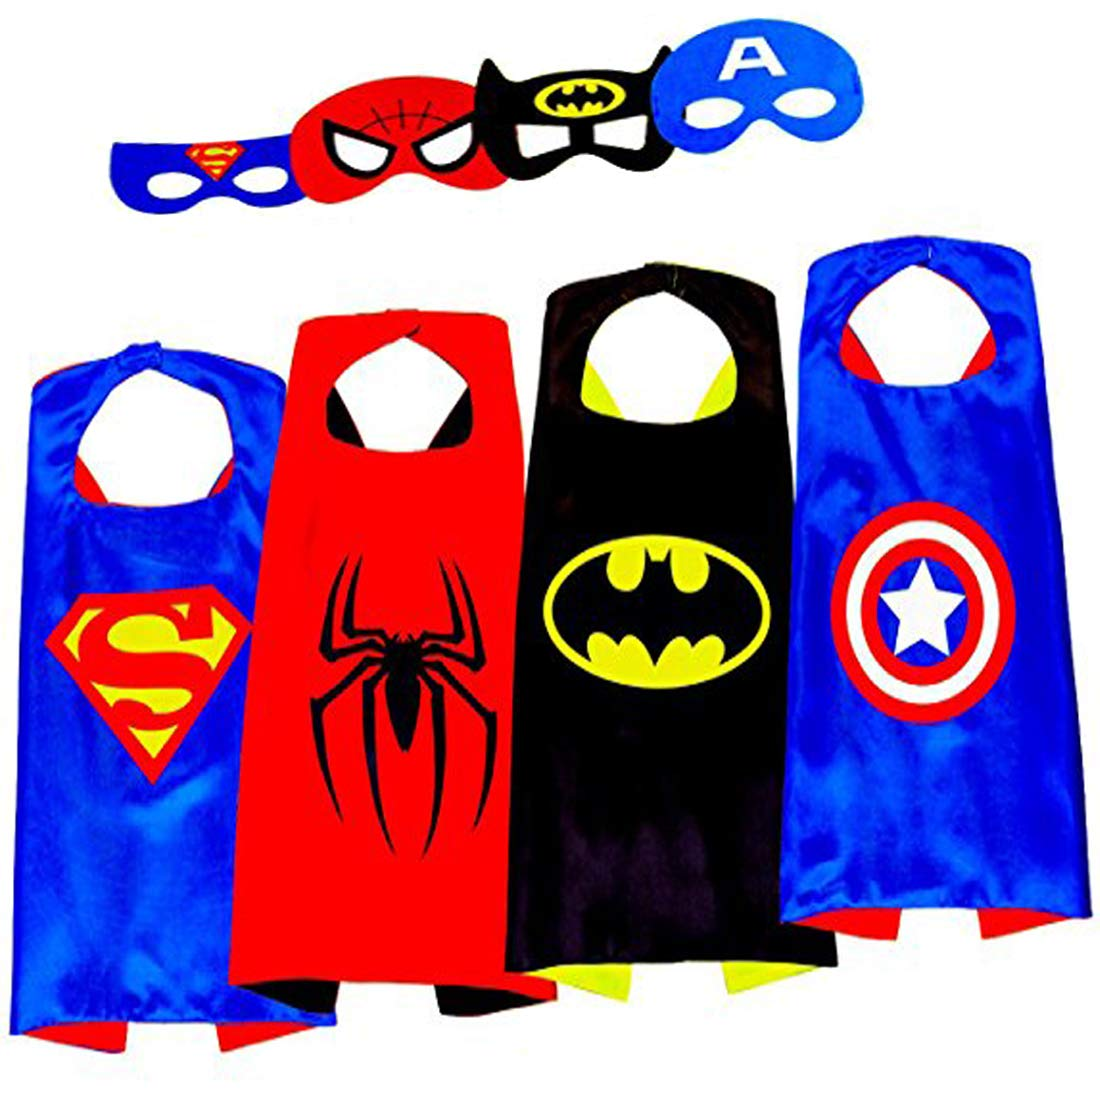 3KINGS Comics Cartoon Dress Up Costumes 4Pcs Capes and Masks